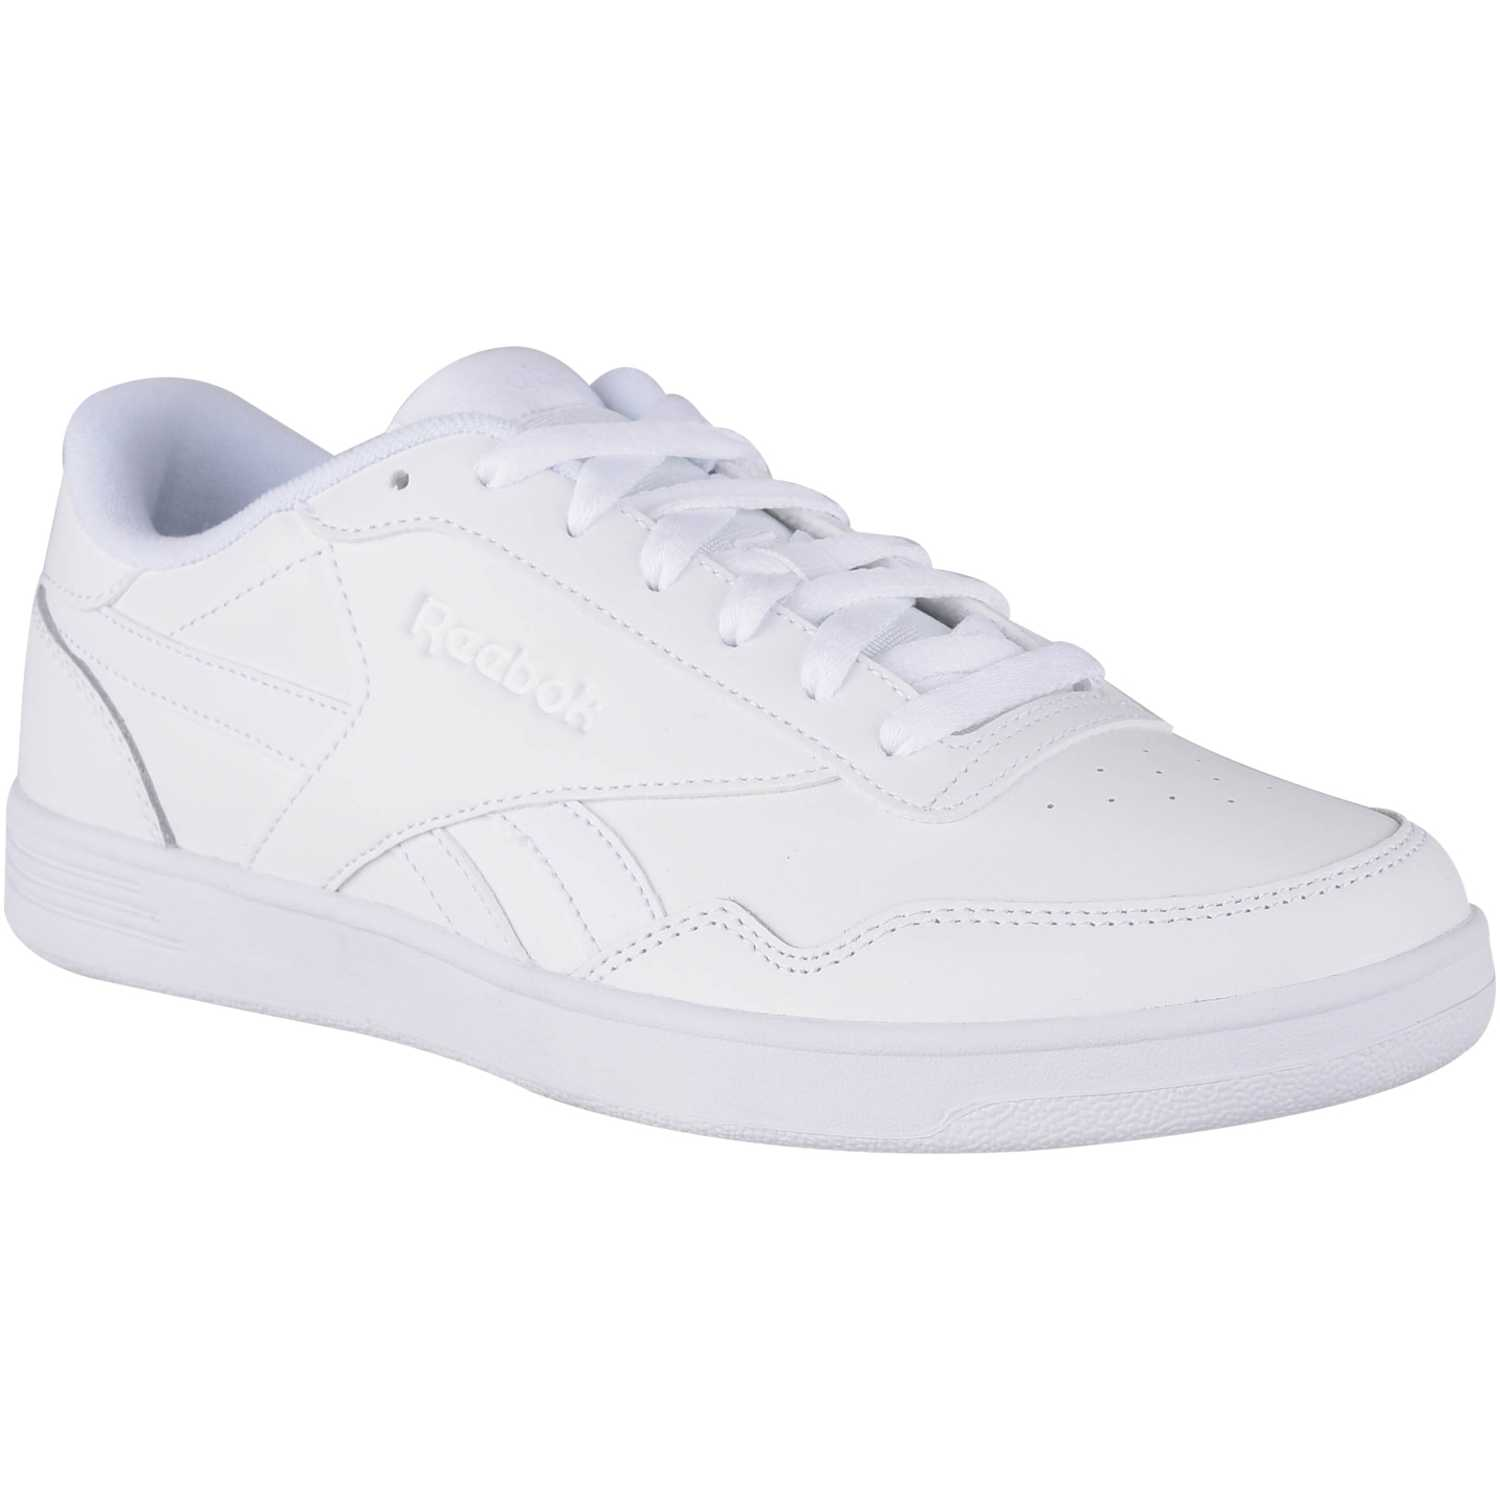 Reebok Reebok Royal Techque T Blanco Para caminar